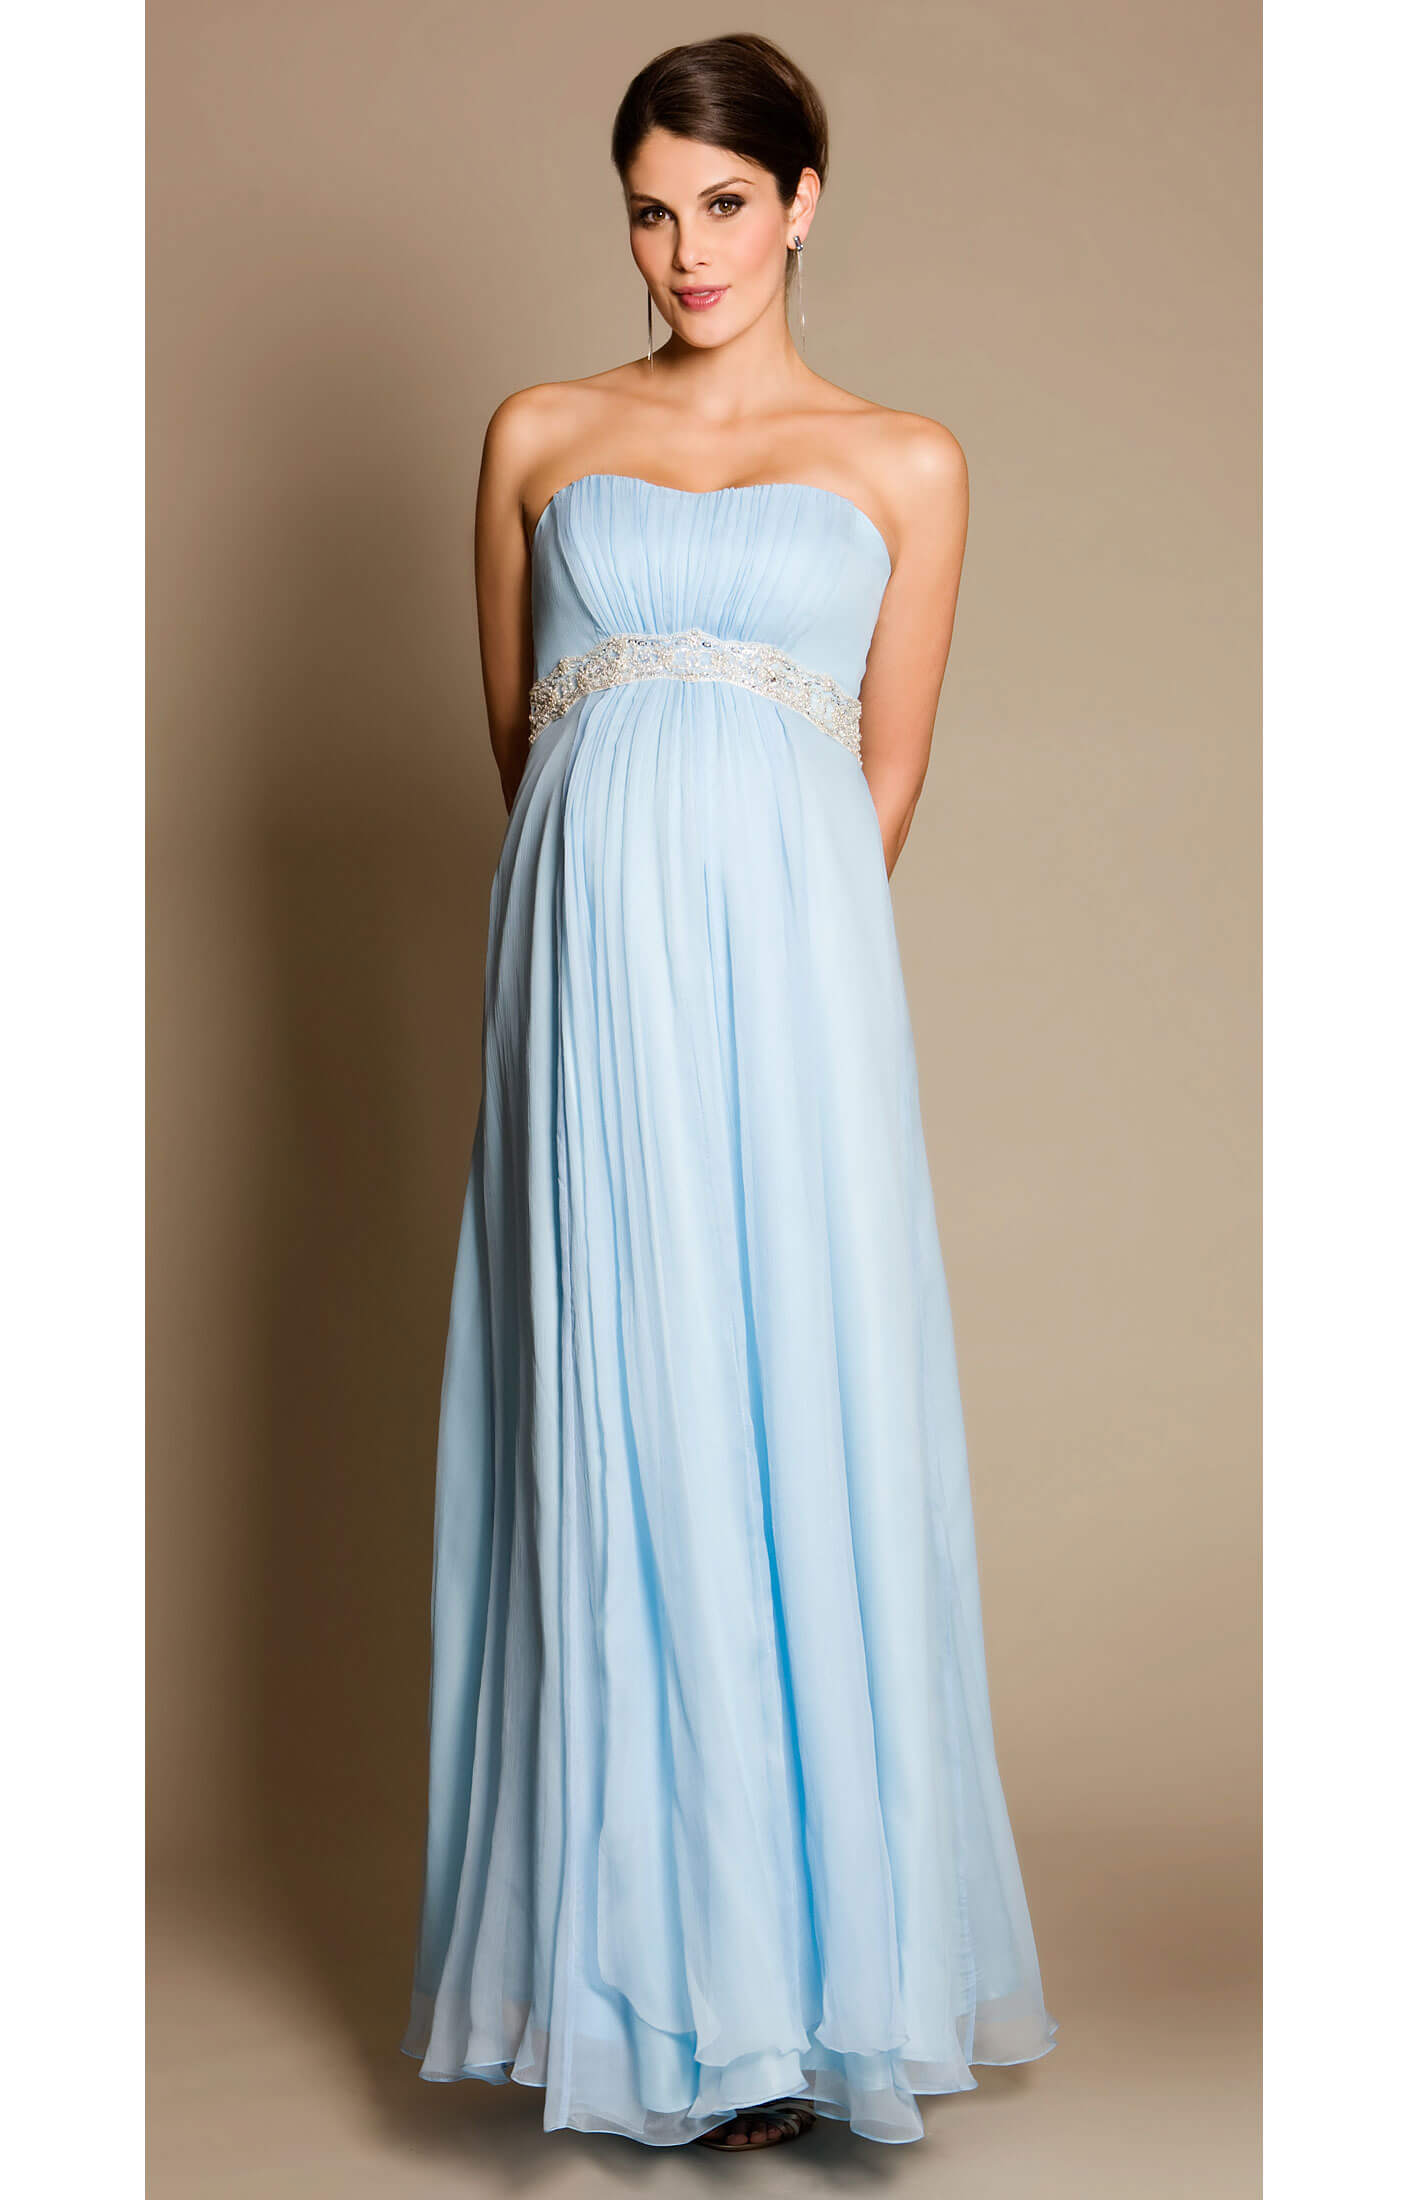 BlueBell Maternity Gown With Diamante Sash Maternity Wedding Dresses